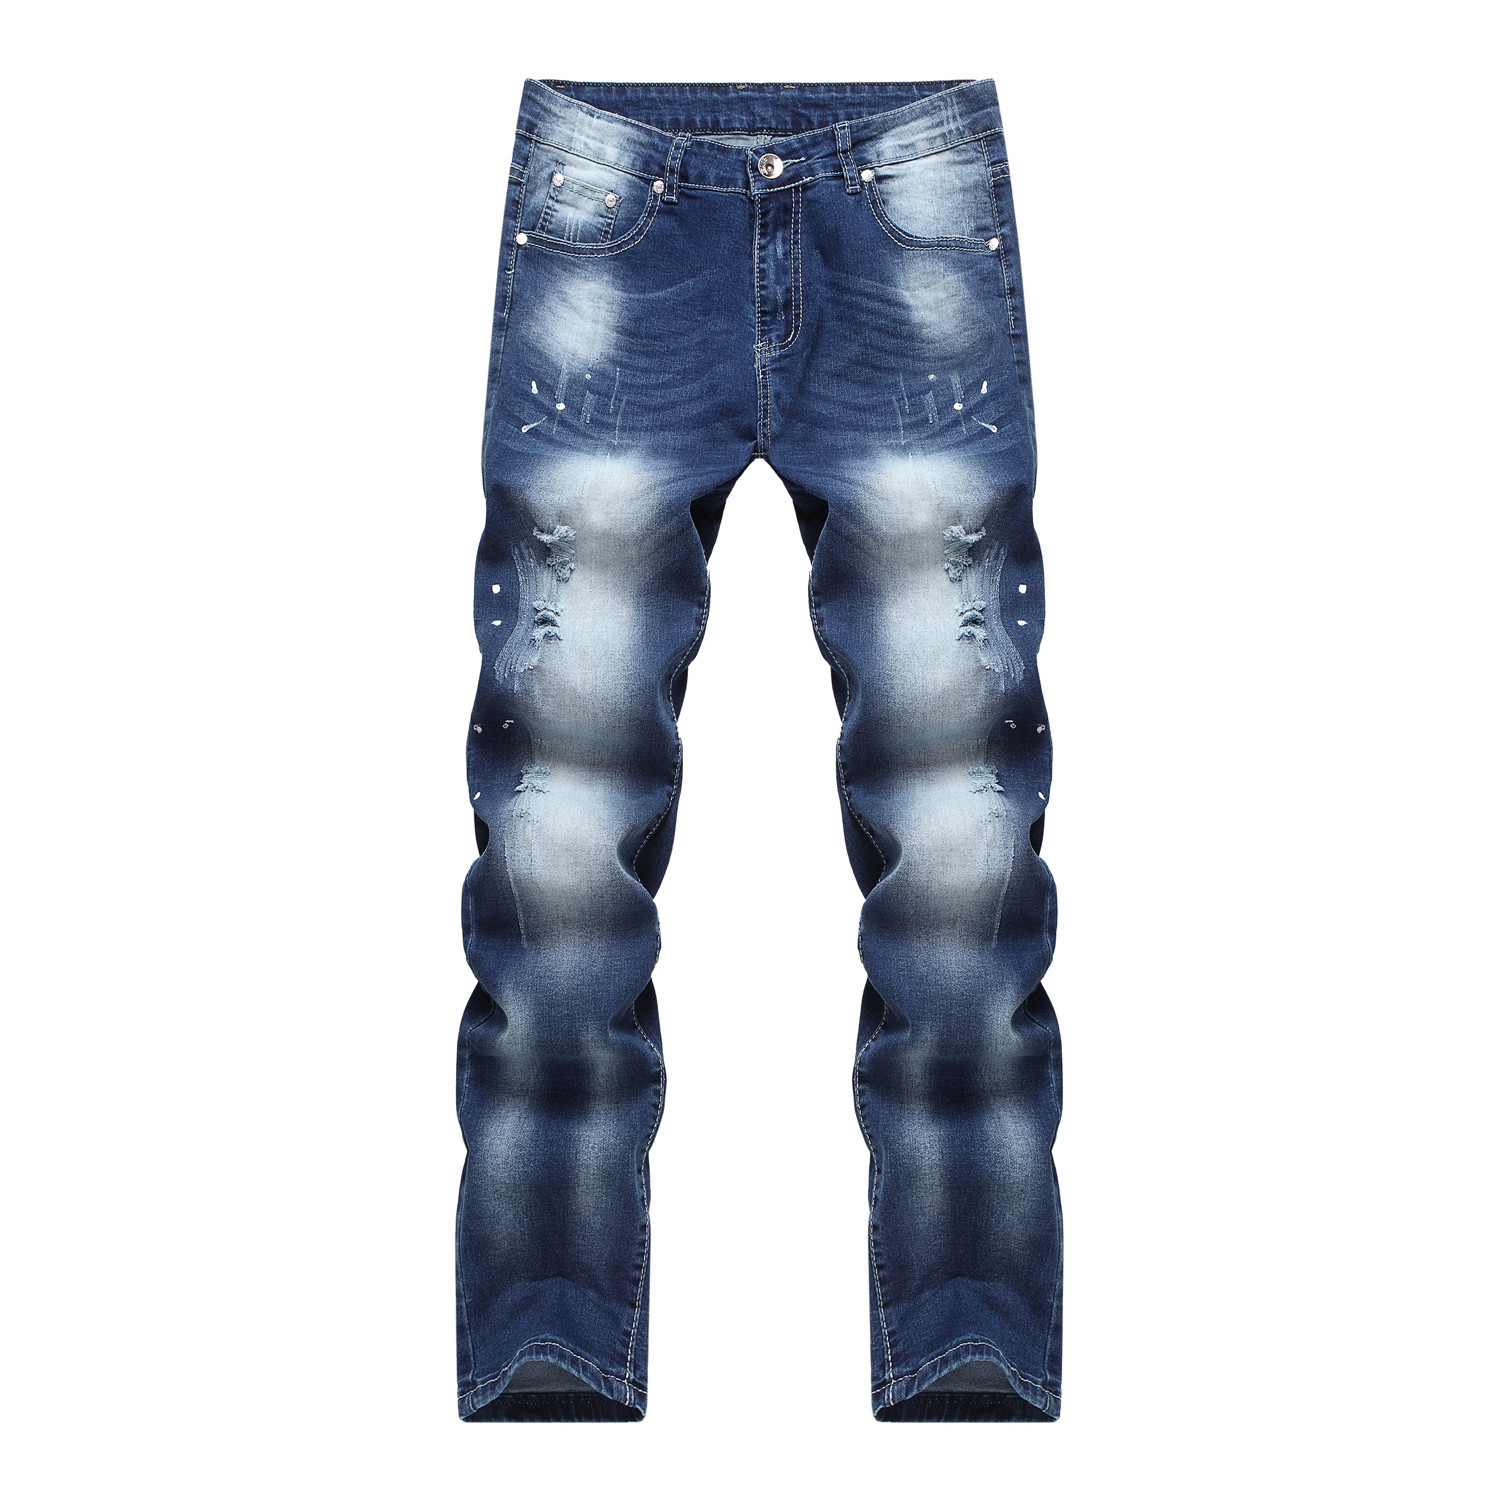 Autumn Motor Jeans Men Fear of God Biker Jeans Casual Trousers Mens Hip Hop Robin Ripped Jeans Mans Cotton Slim Fitness Pants men jeans fear of god ripped blue mens holes leisure straight denim designer mens jeans streetwear clothing pant oversize 28 40